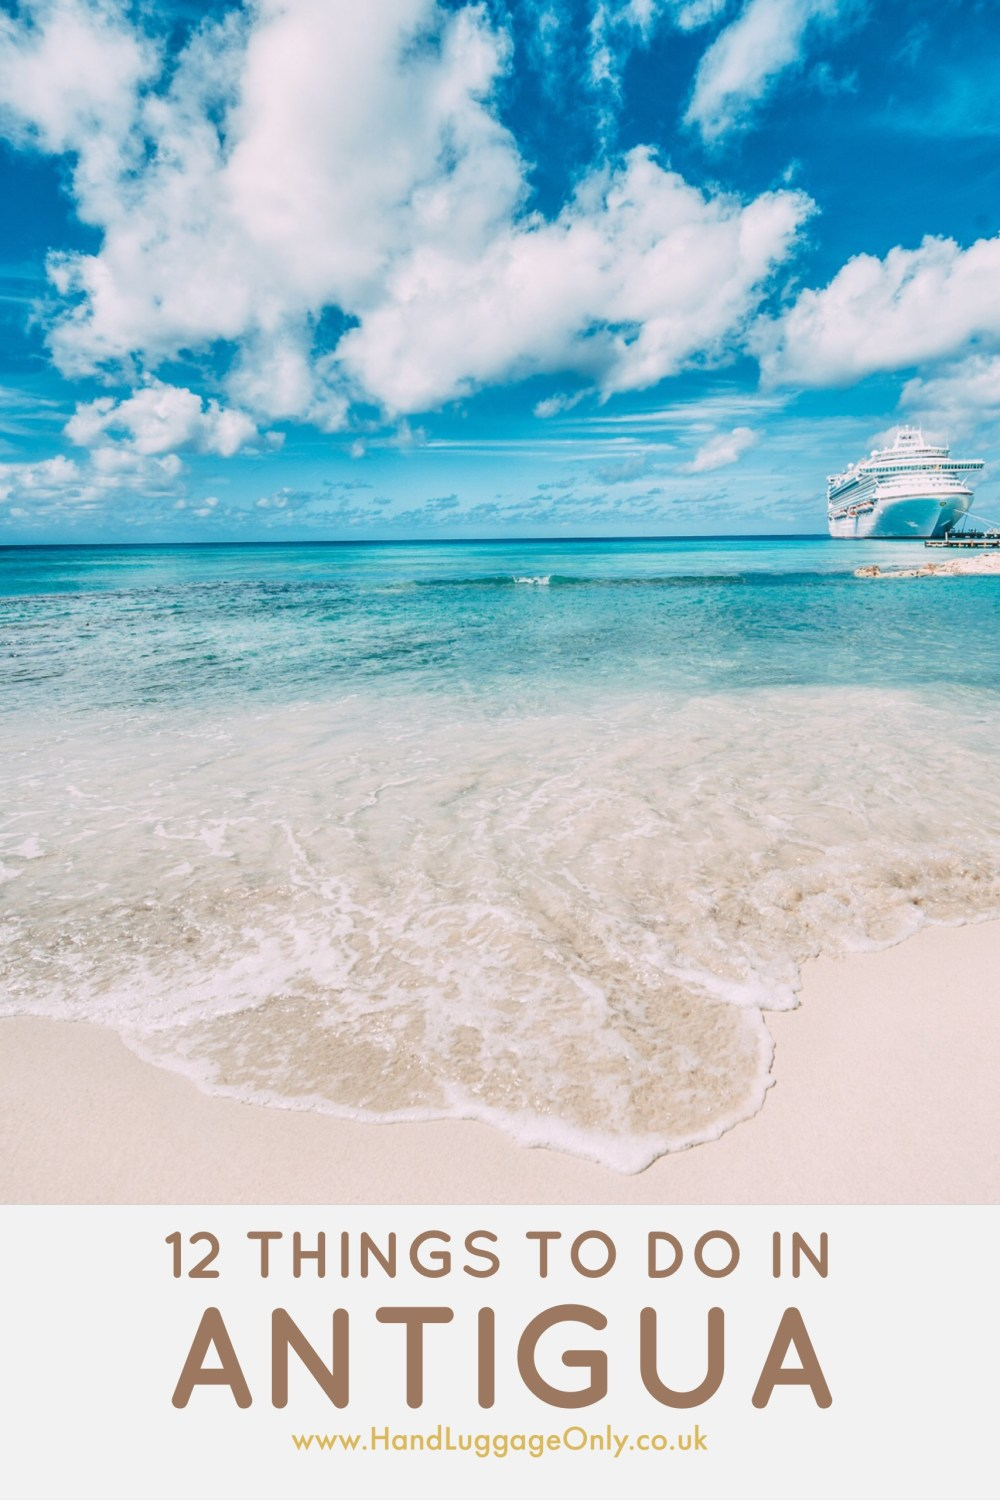 12 Things To Do In The Caribbean Island Of Antigua (1)